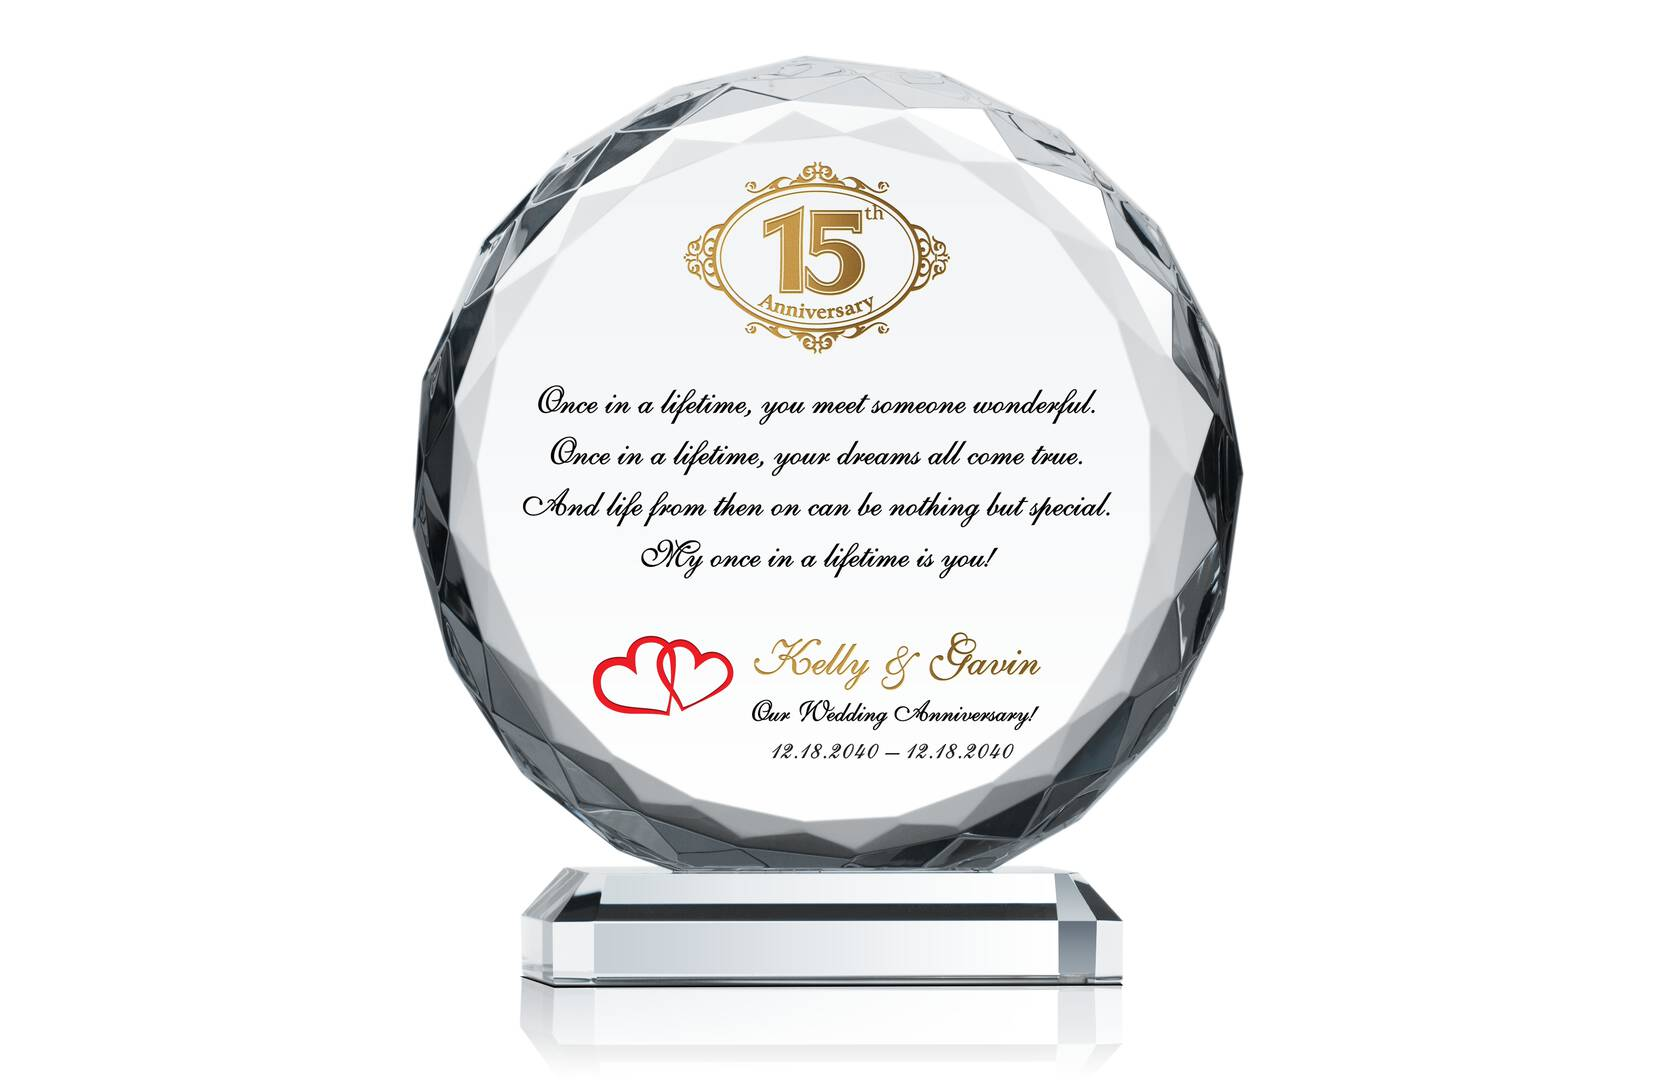 15th Wedding Anniversary Gift Ideas For Wife: Crystal Anniversary Gift